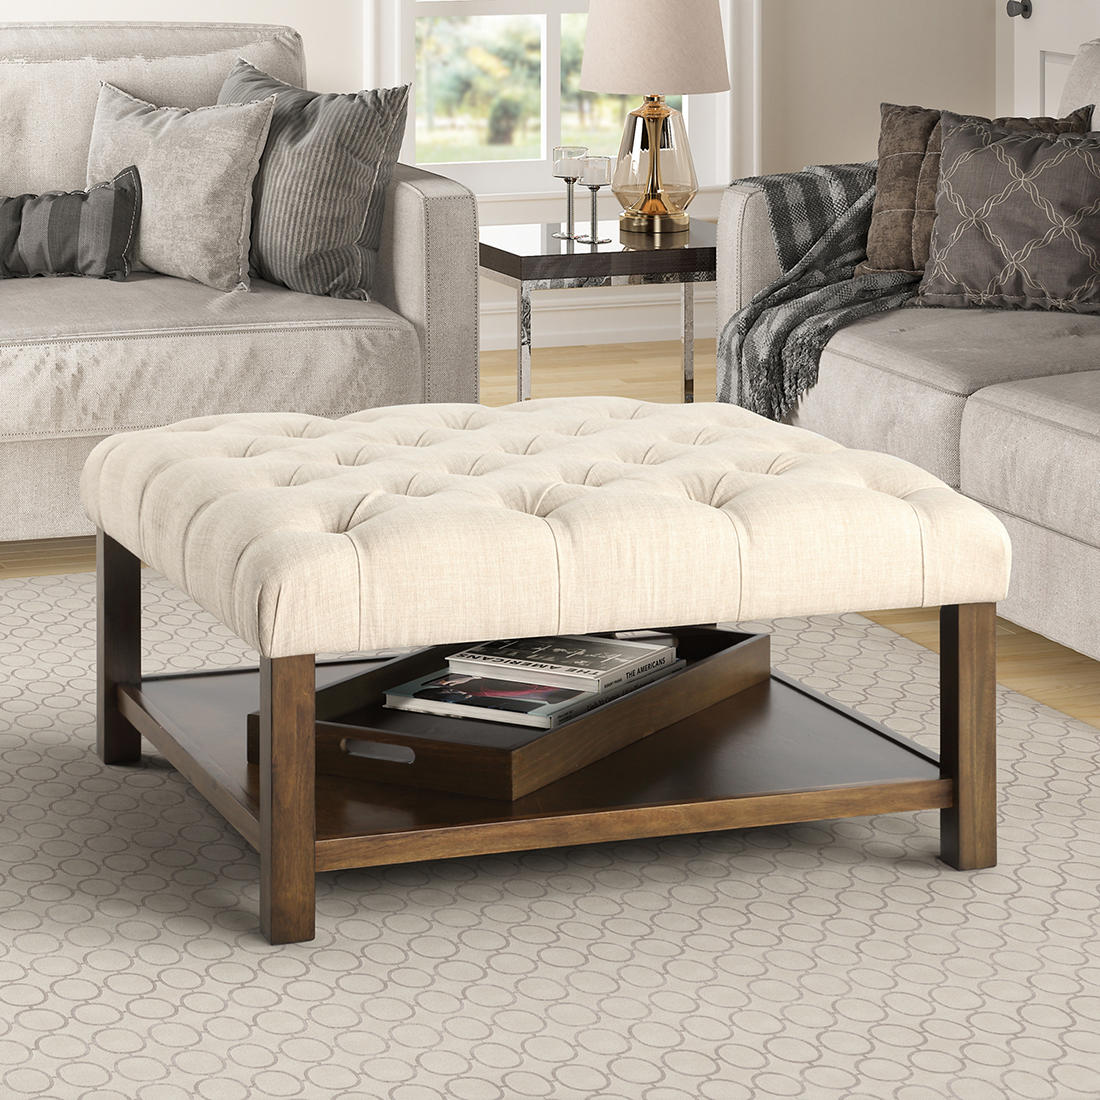 Berkley Jensen Tufted Coffee Table With Serving Tray Bjs Wholesale Club